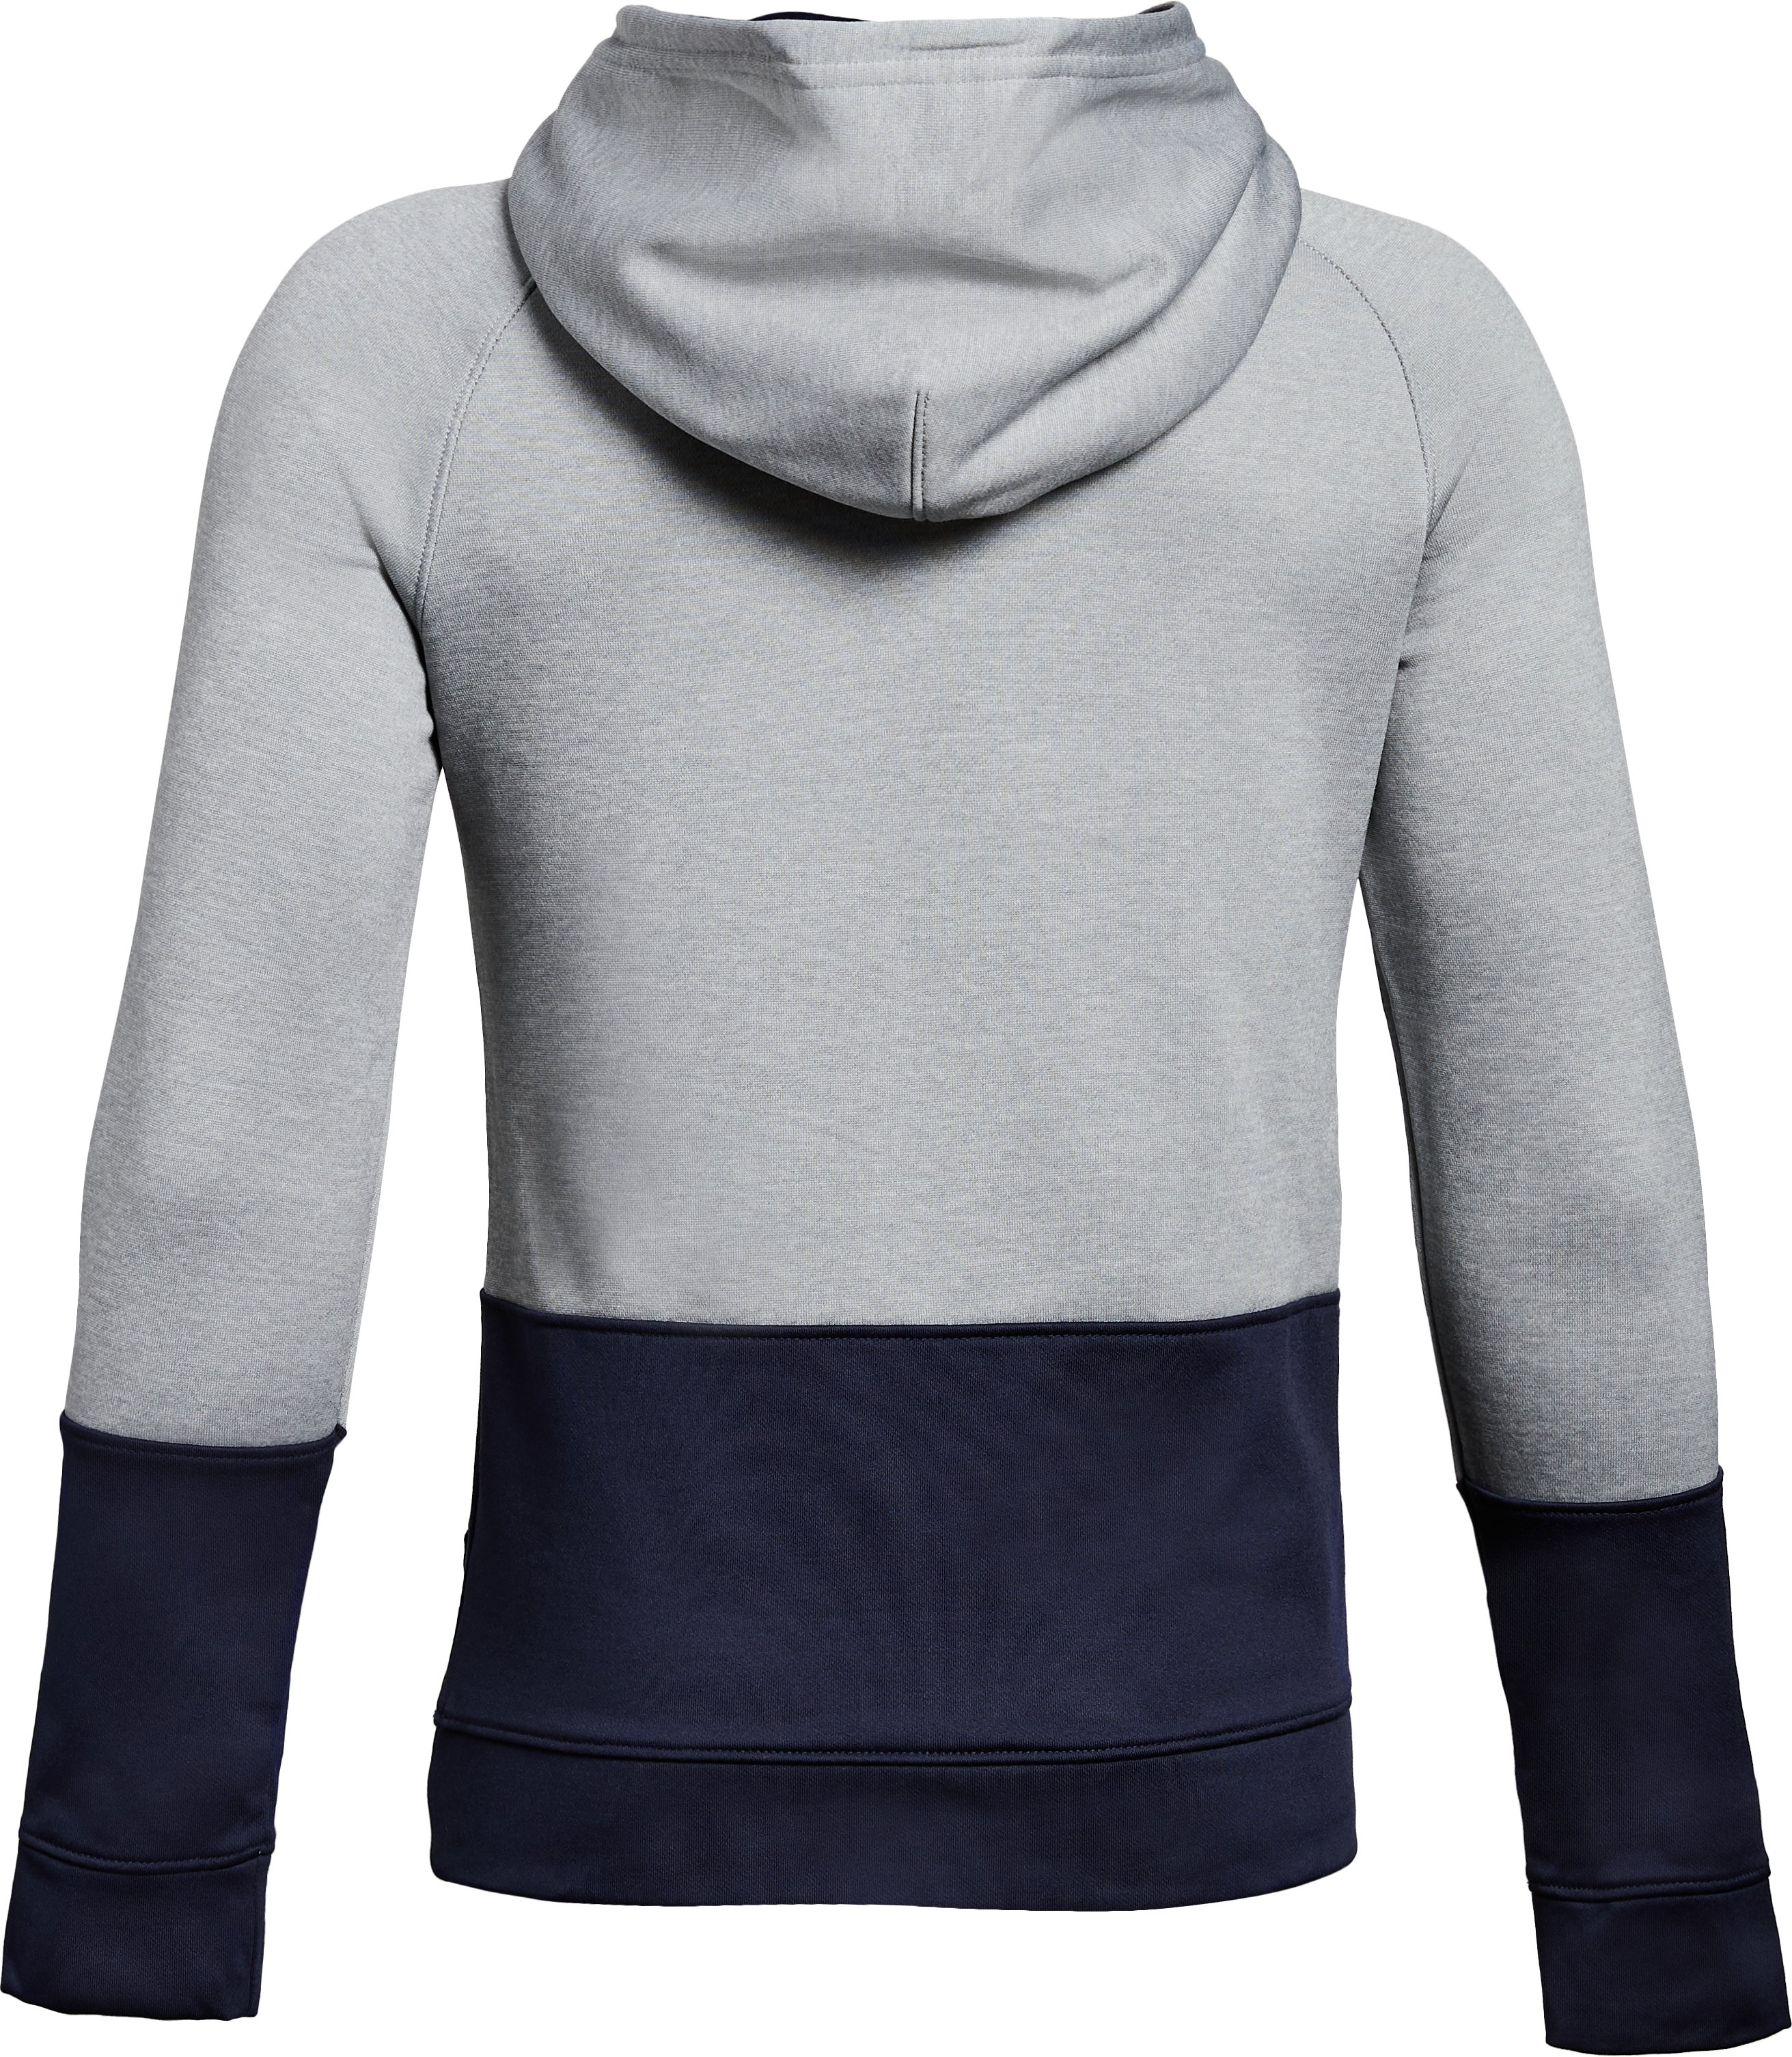 Boys' Yale UA Tech Terry Hoodie, True Gray Heather,